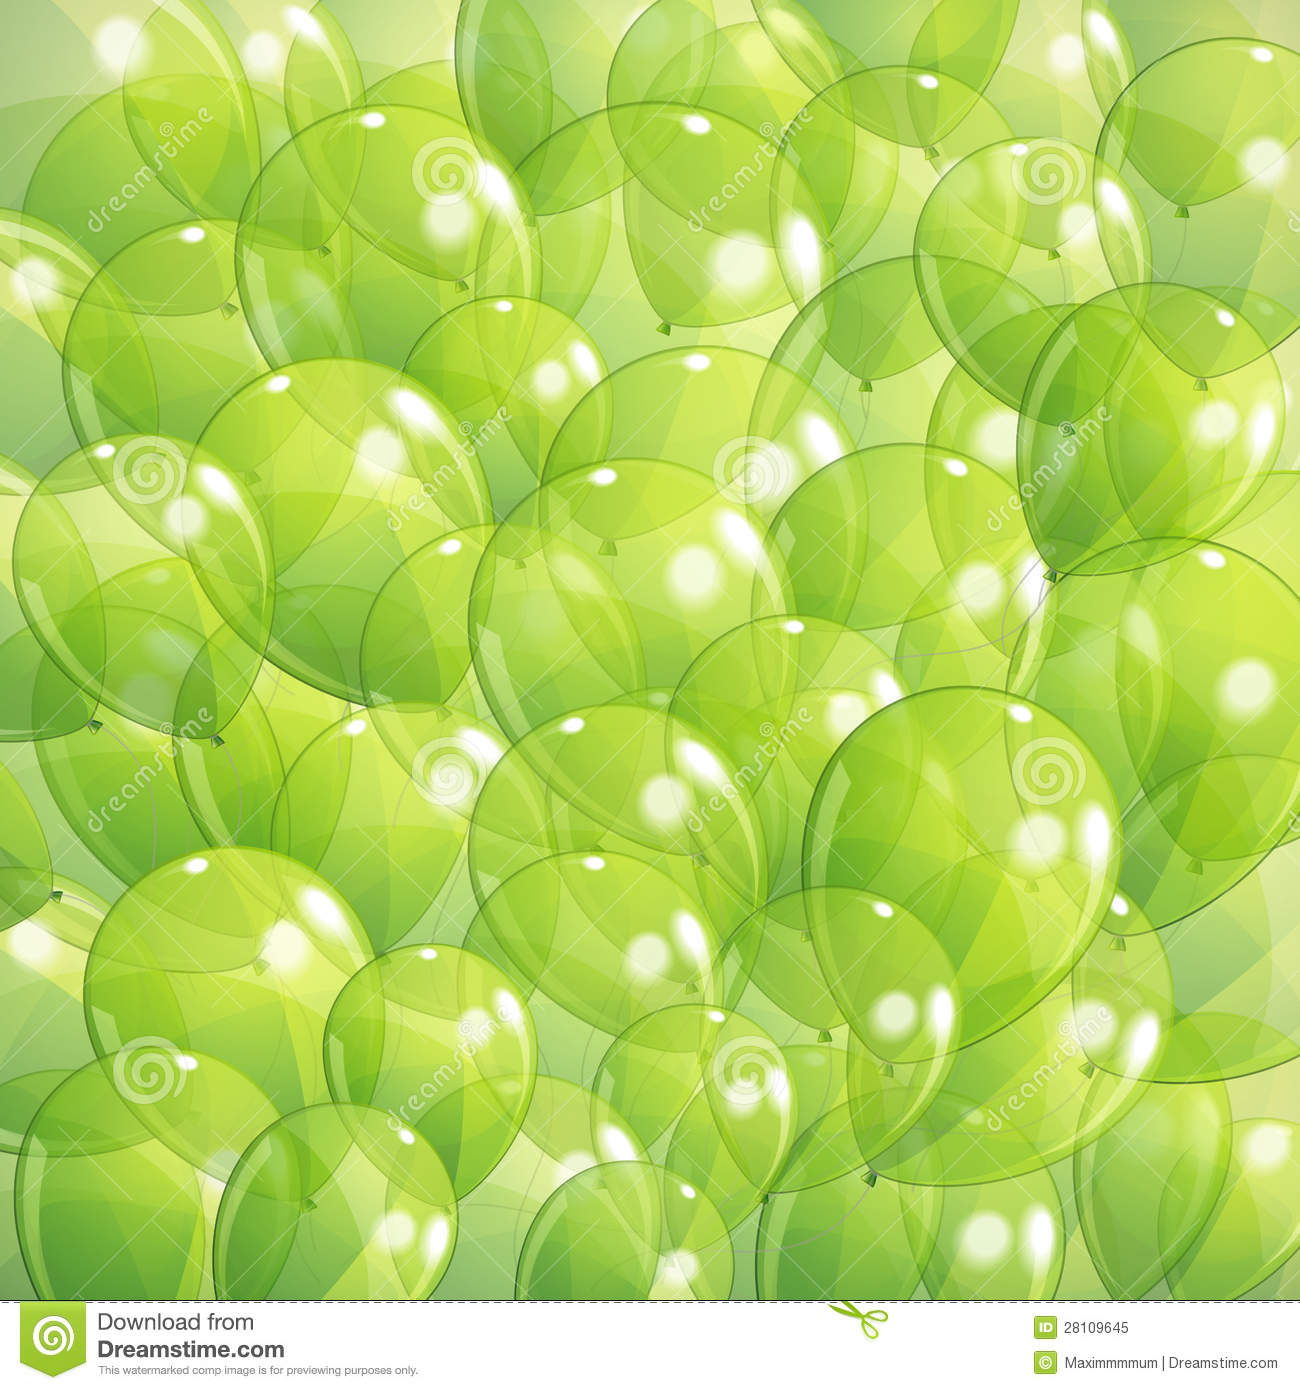 Background With Green Transparent Balloons Royalty Free Stock Photo